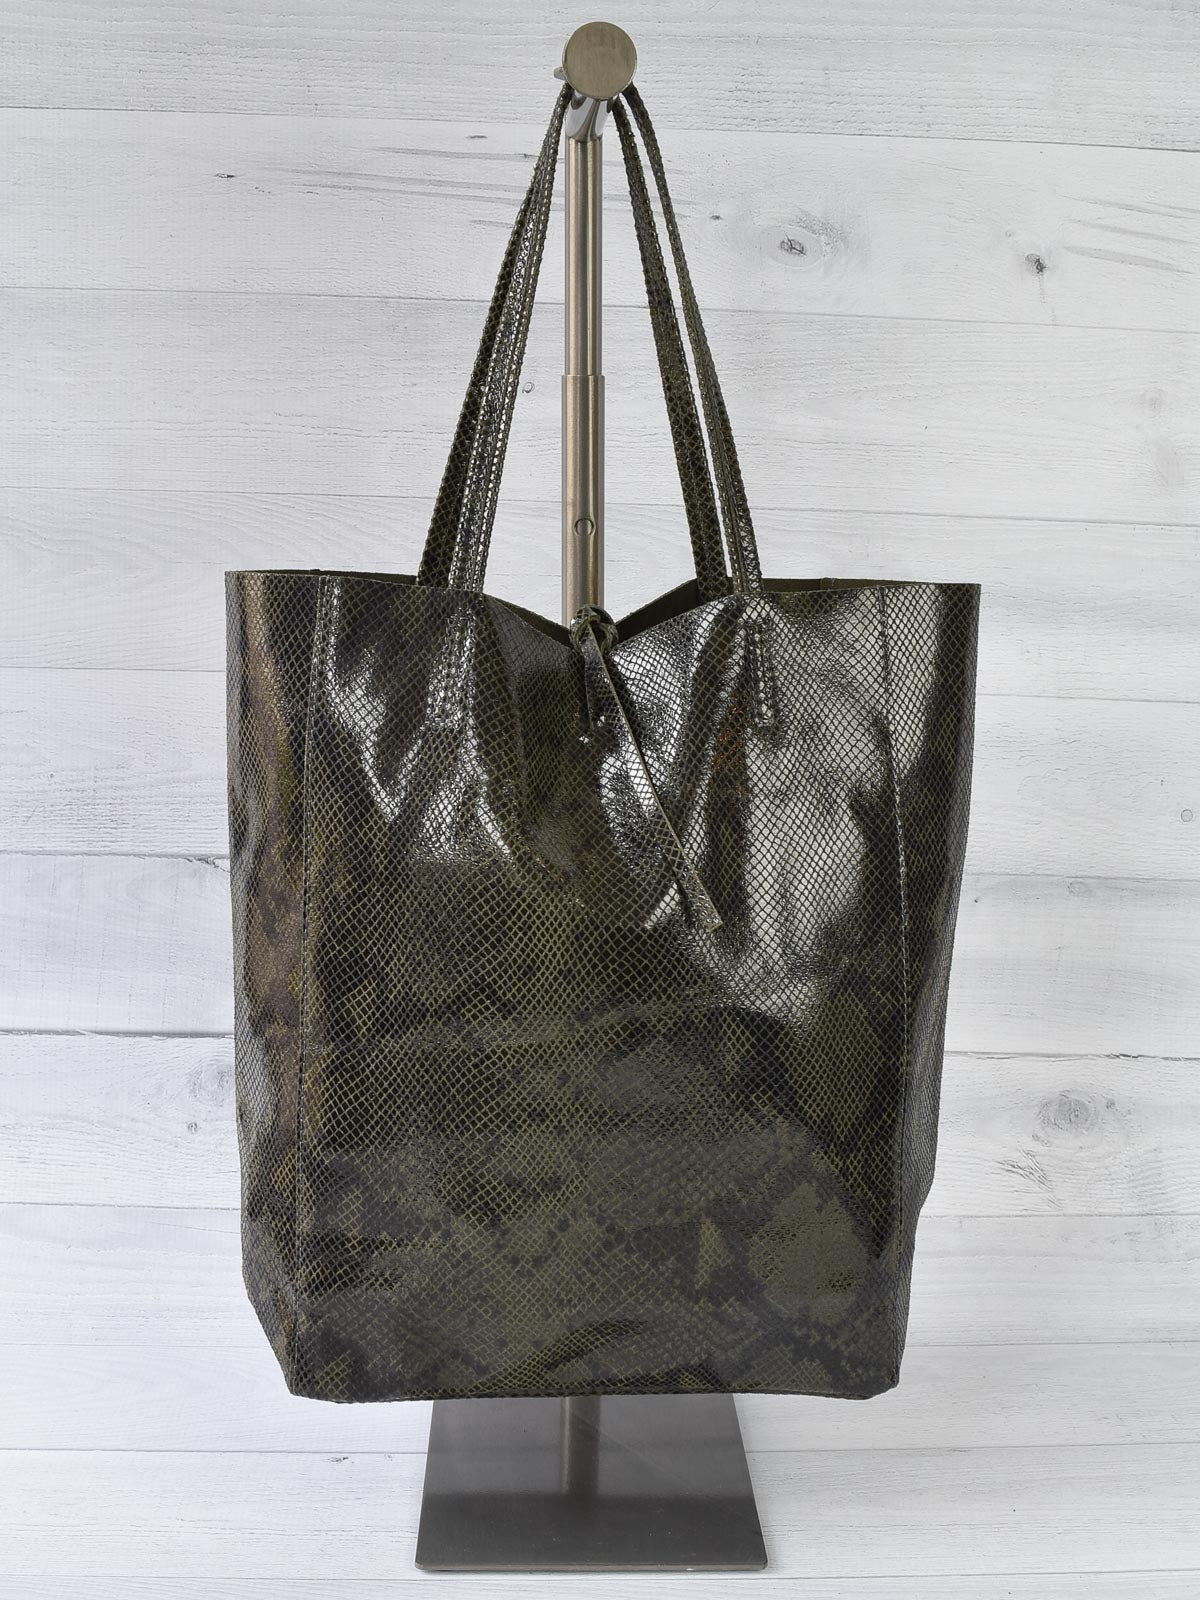 Jijou Capri Snake Print Leather Tote Bag, Olive - Statement Boutique